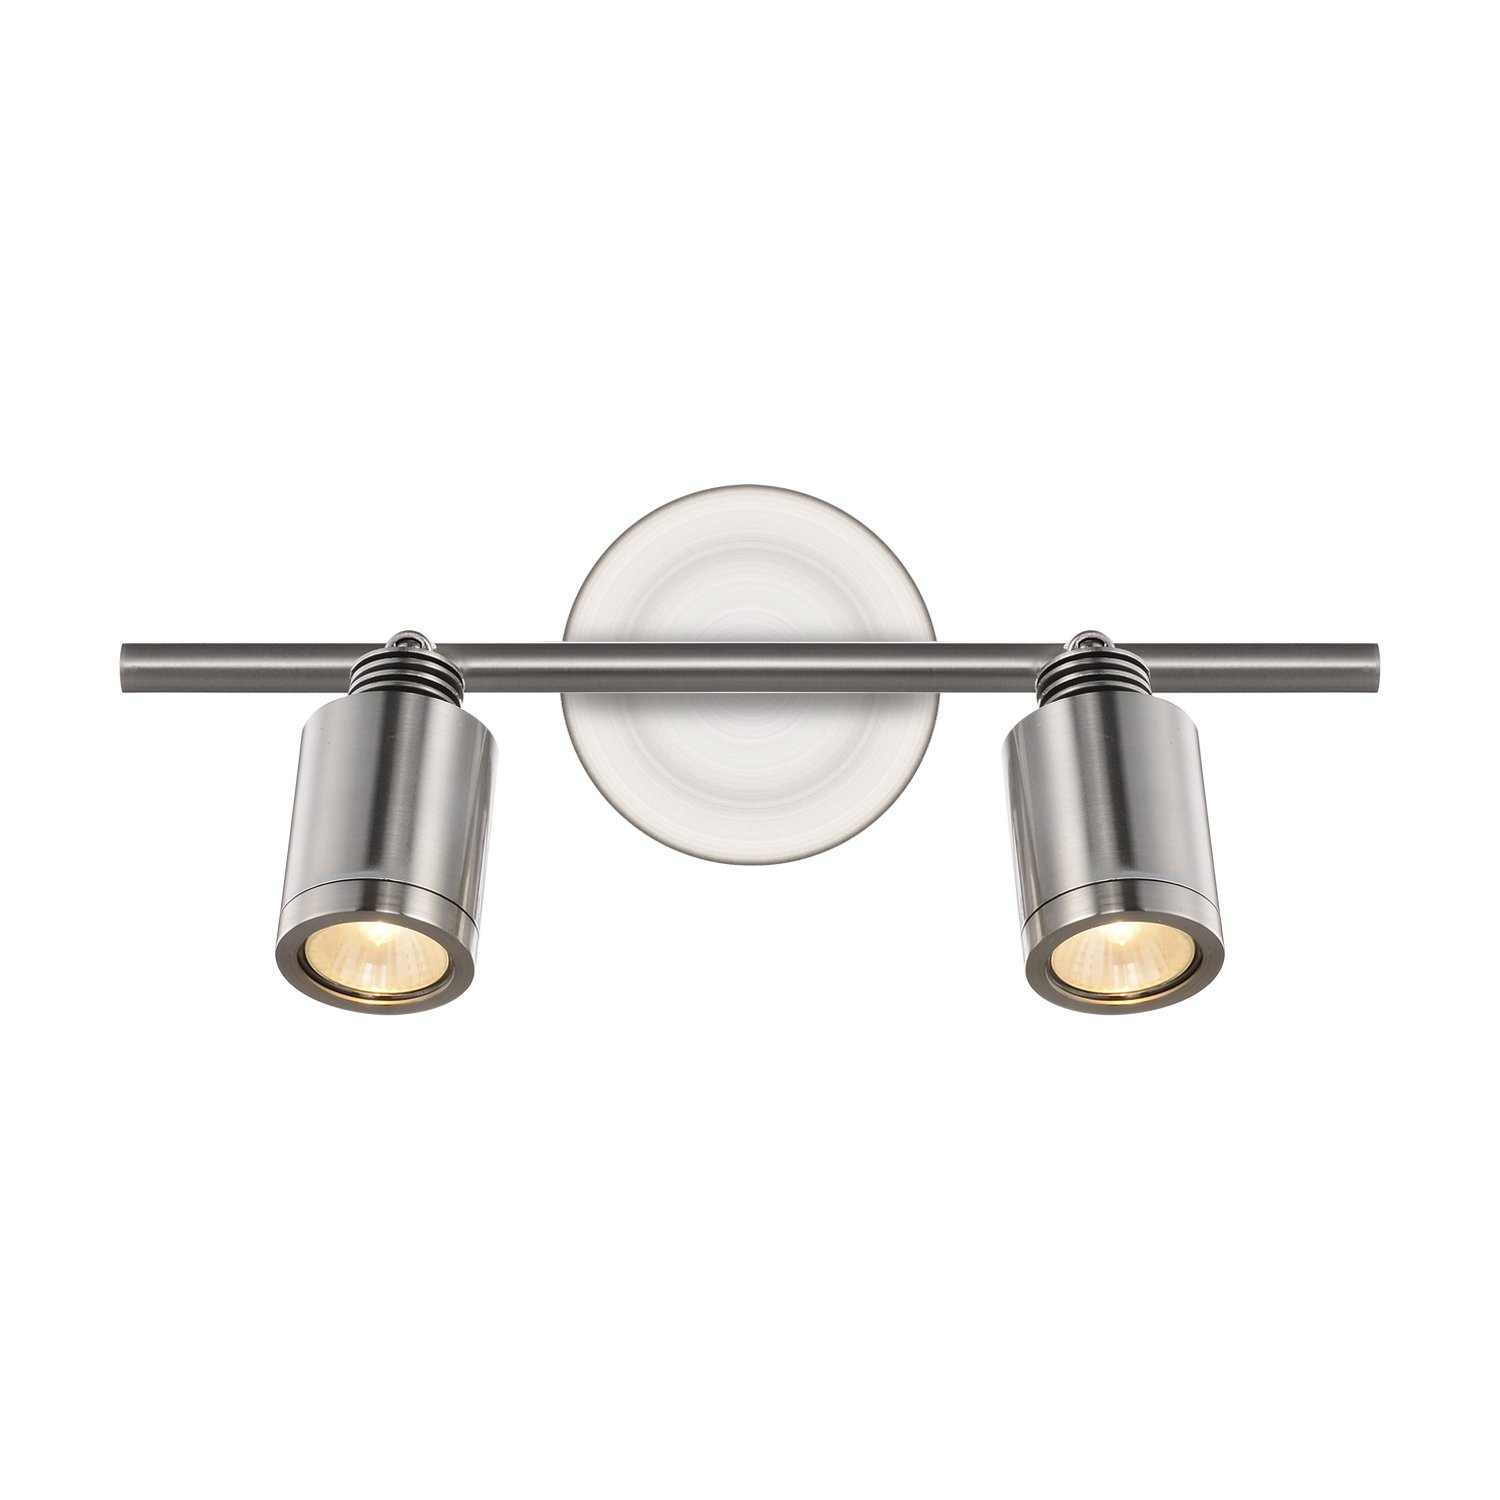 Radionic Hi Tech K_TKL_8823 Cassie 2 Light Brushed Nickel Track Light, 15''